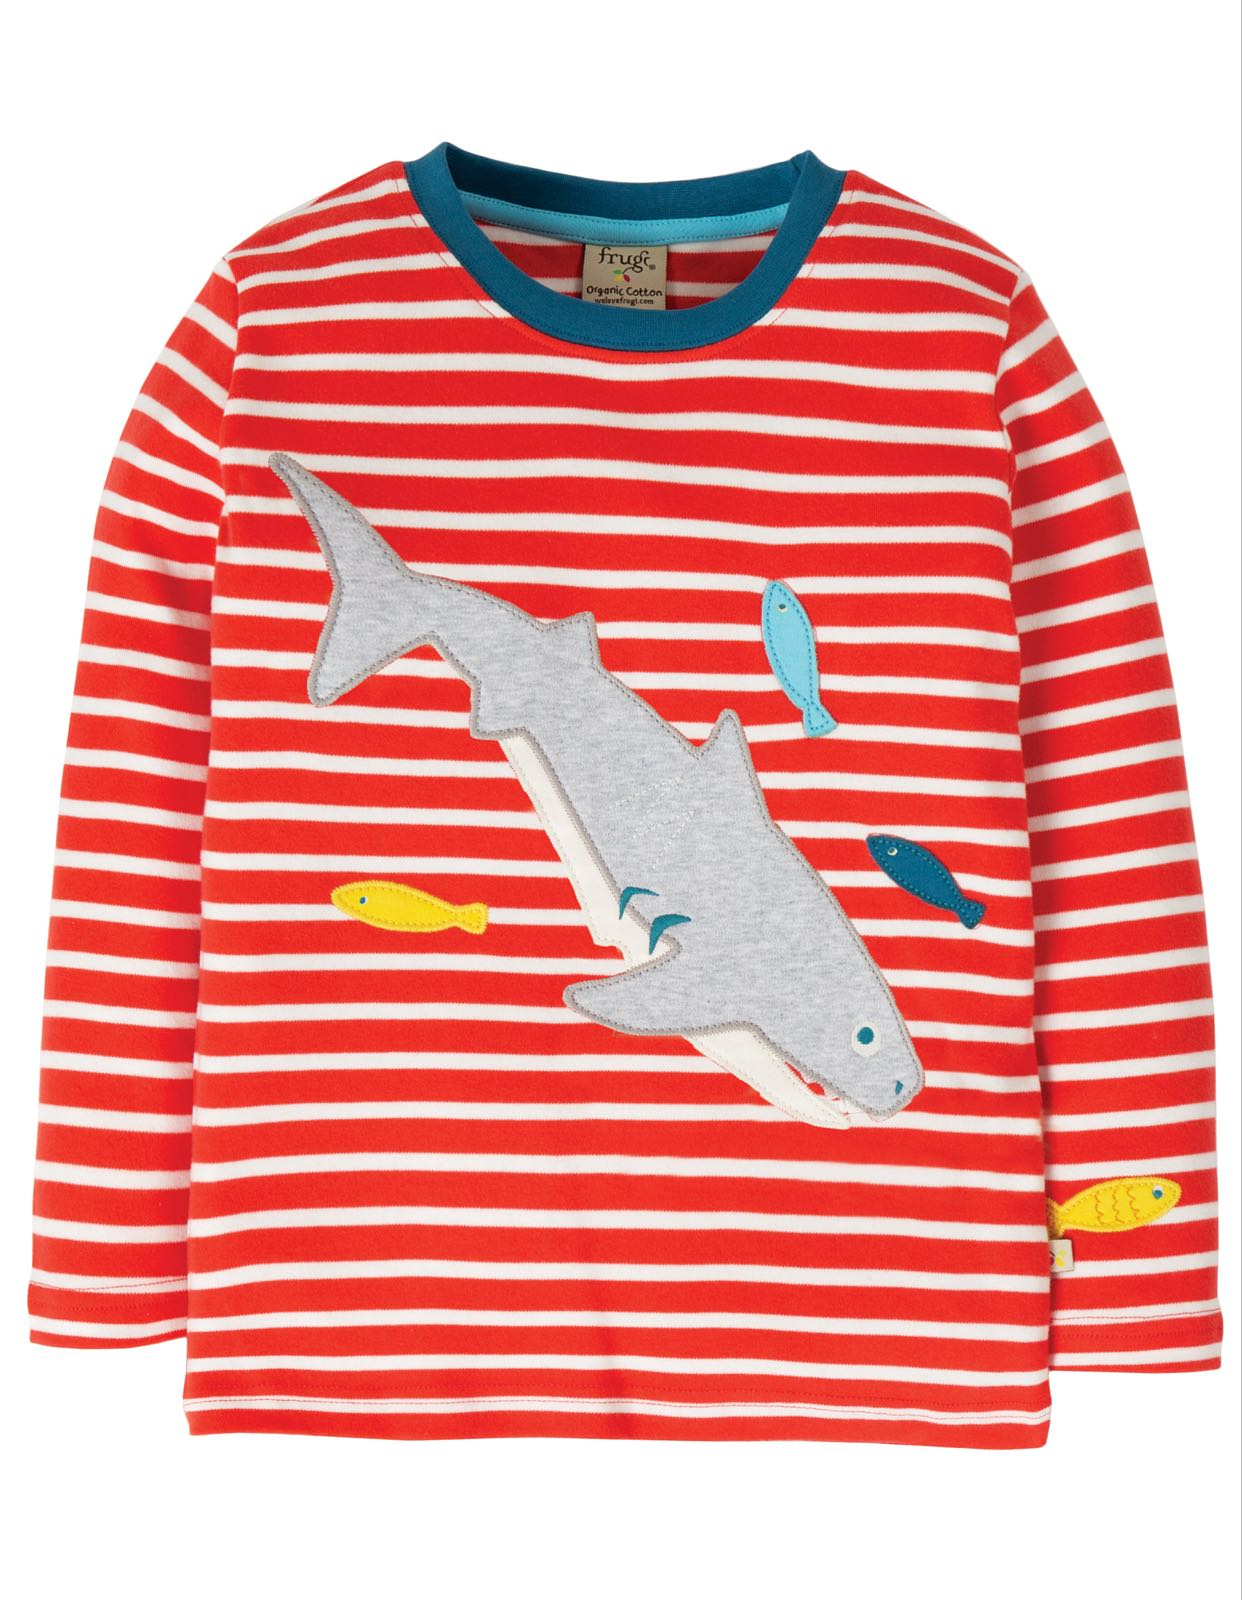 Frugi Discovery Appliqué Top, Koi Red Stripe/Shark